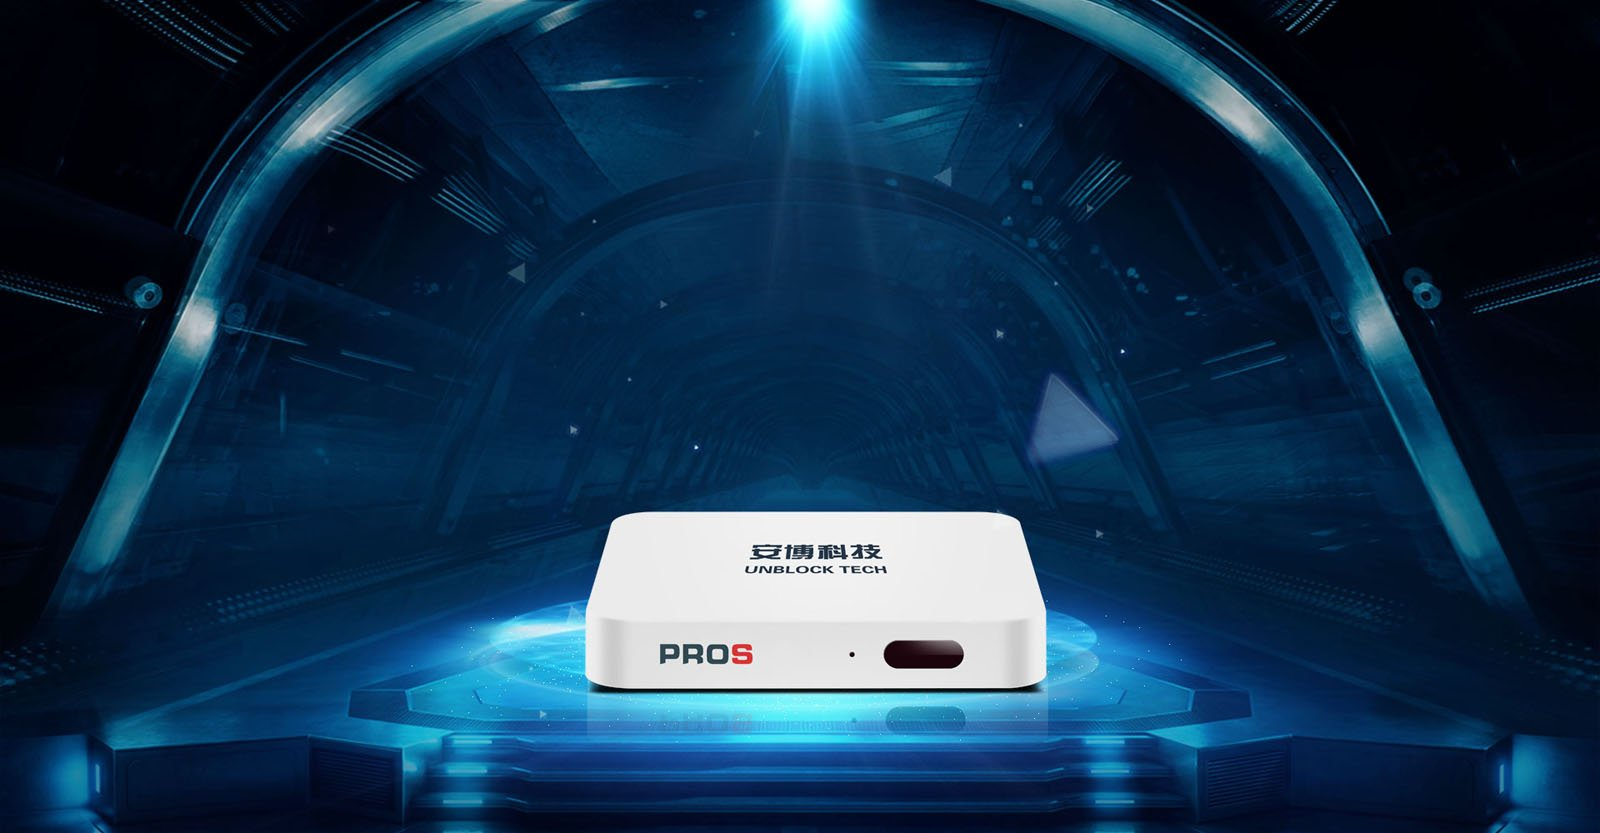 IMARTCITY, Unblock Tech, UBox PROS, Generation 7, TV Box, Hong Kong Edition, Free TV programs, Watch Movies, Highlighted features